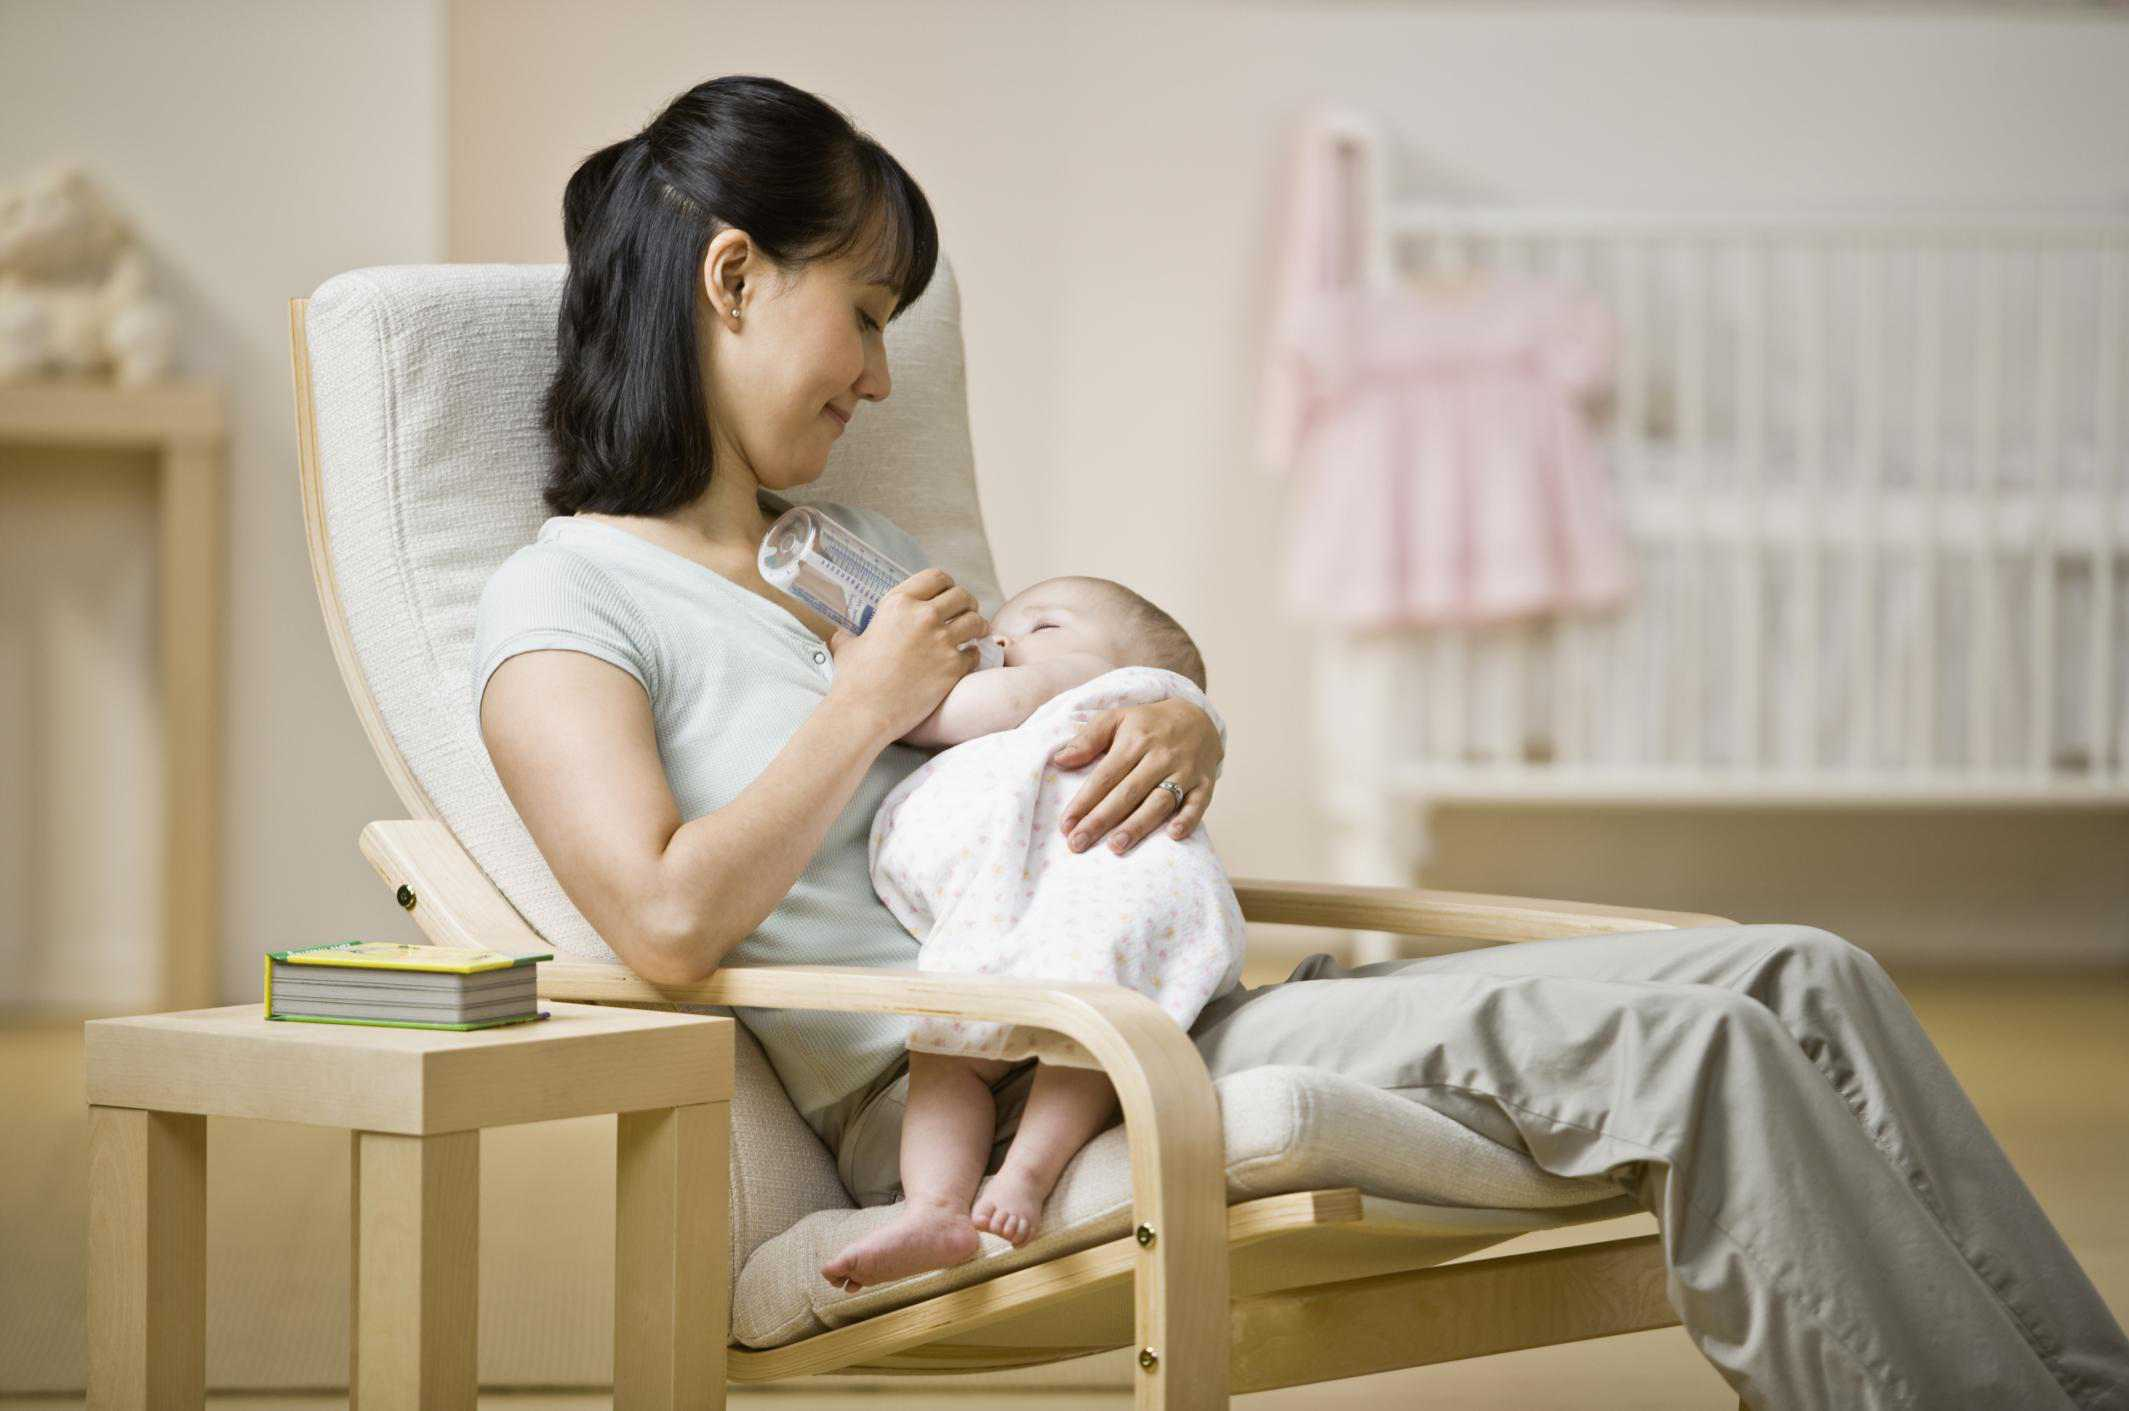 5 Tips For Choosing A Breastfeeding Chair